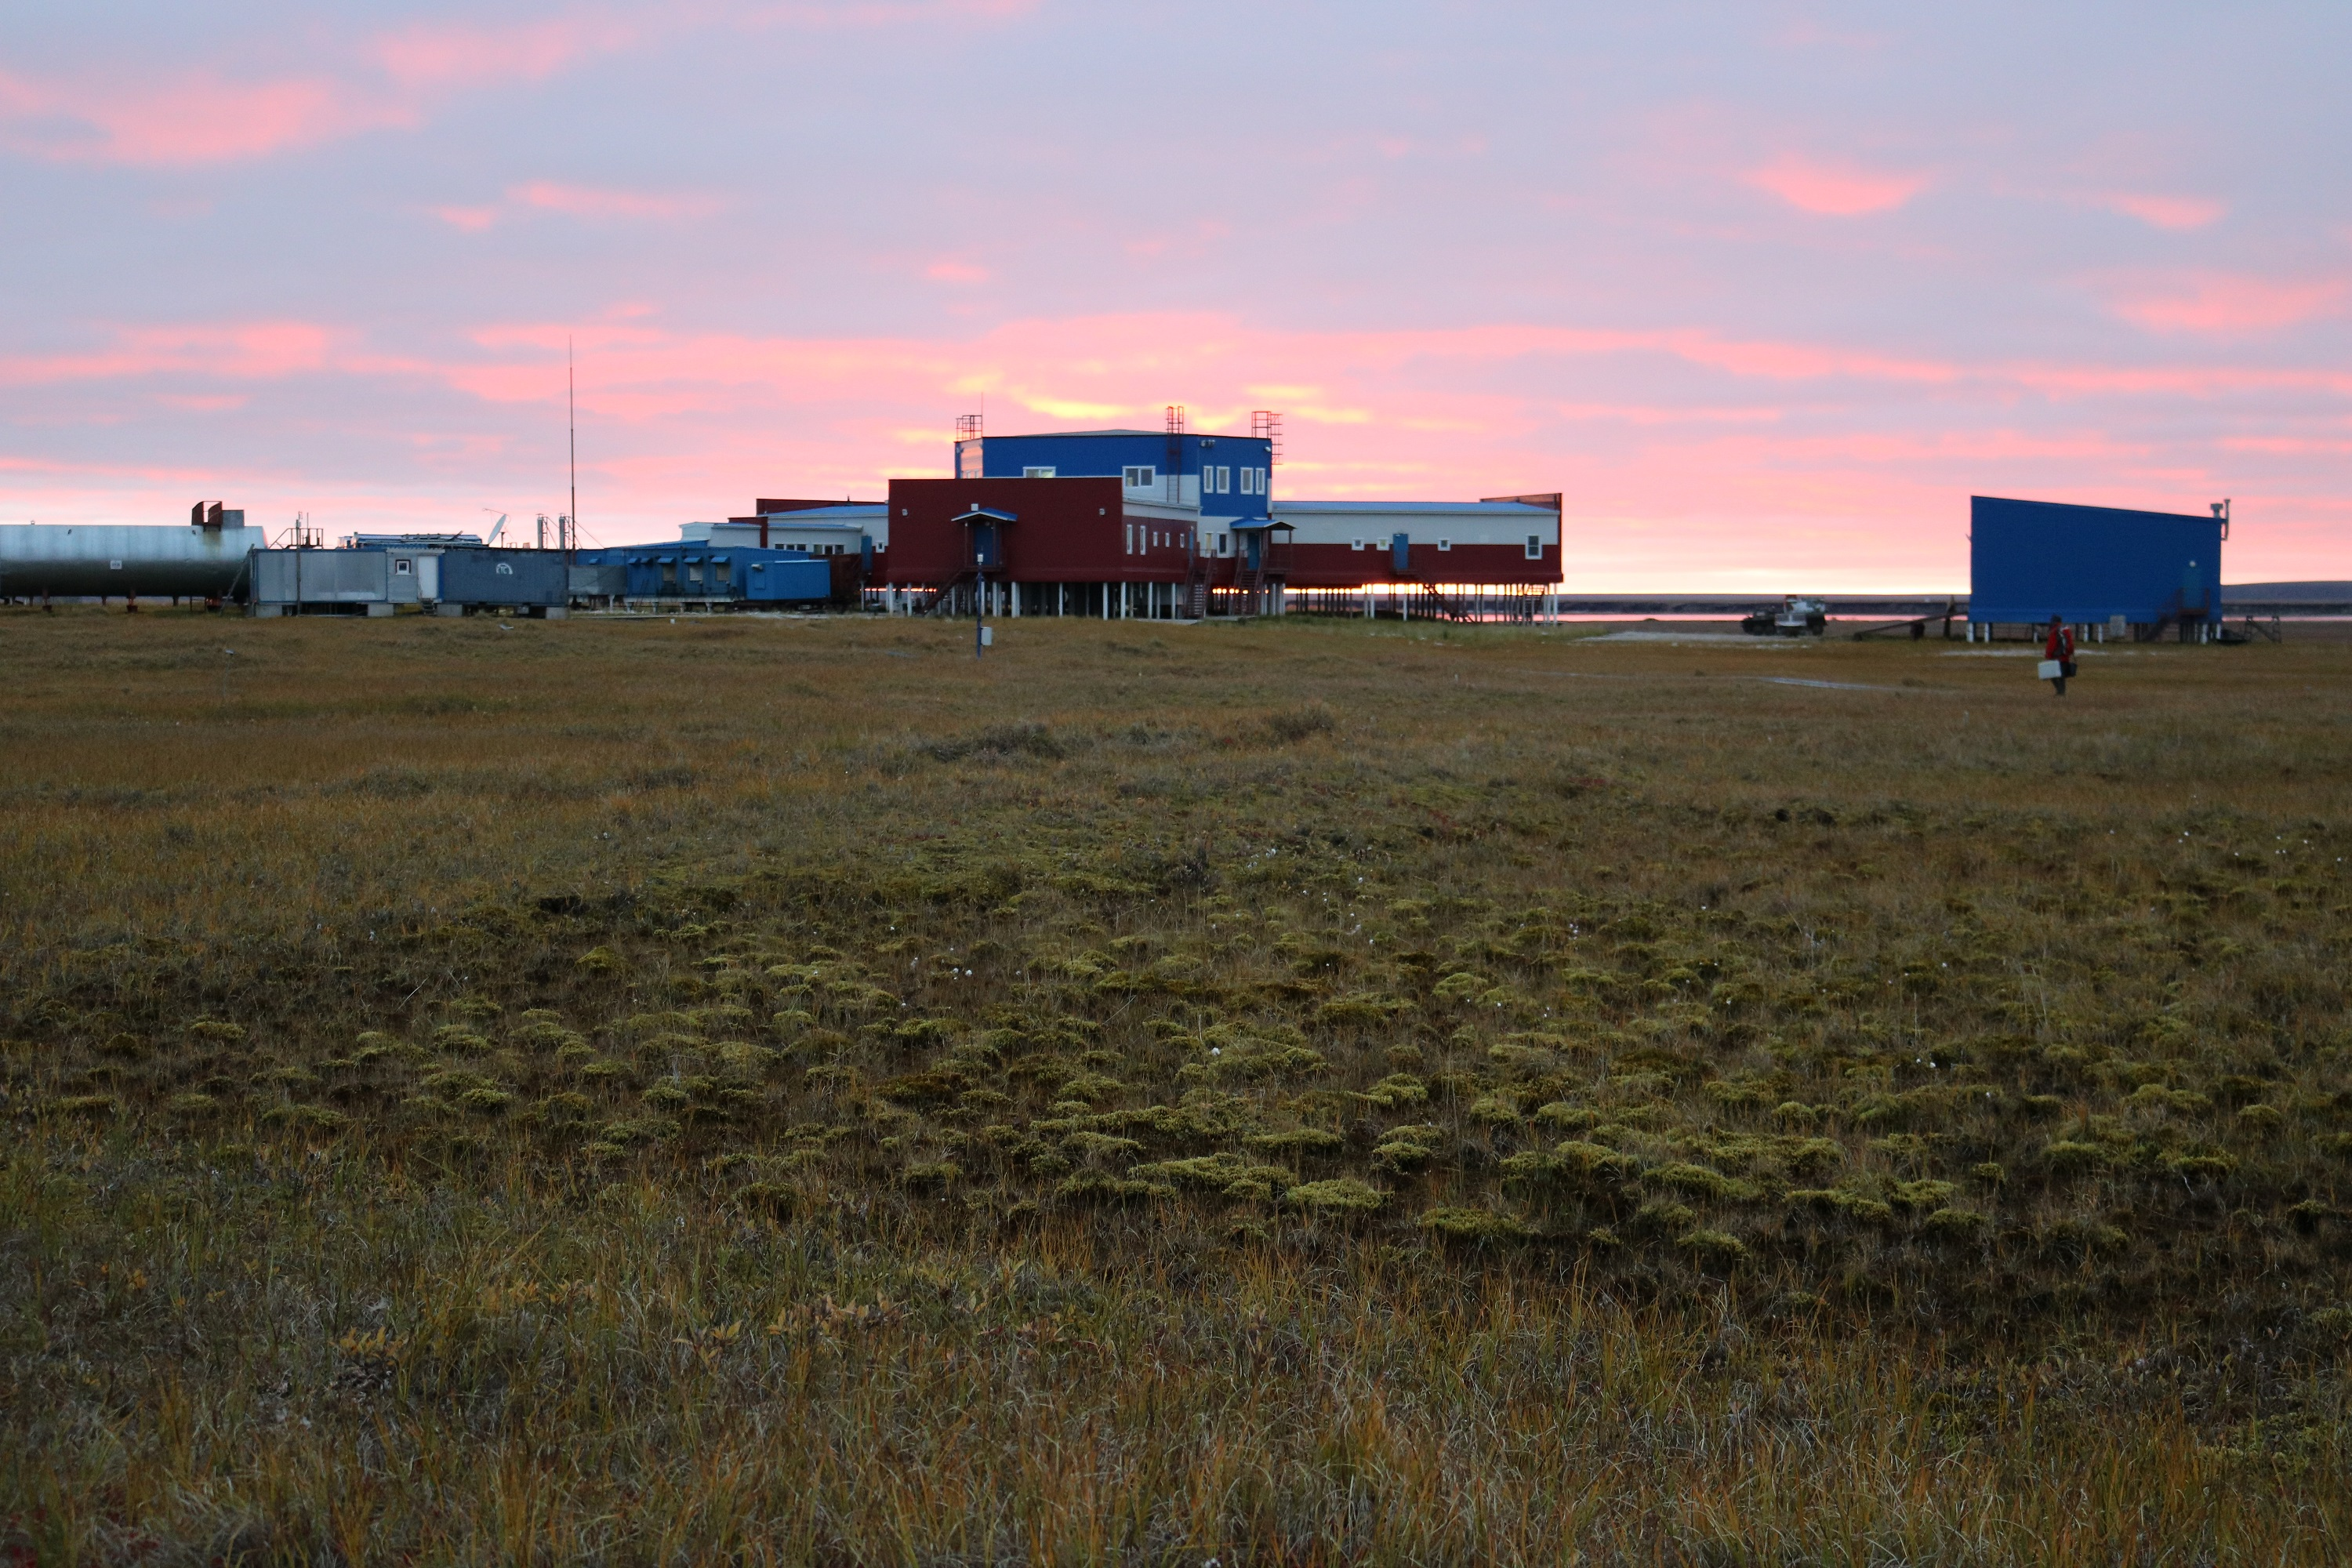 Samoylov research station in the sunset